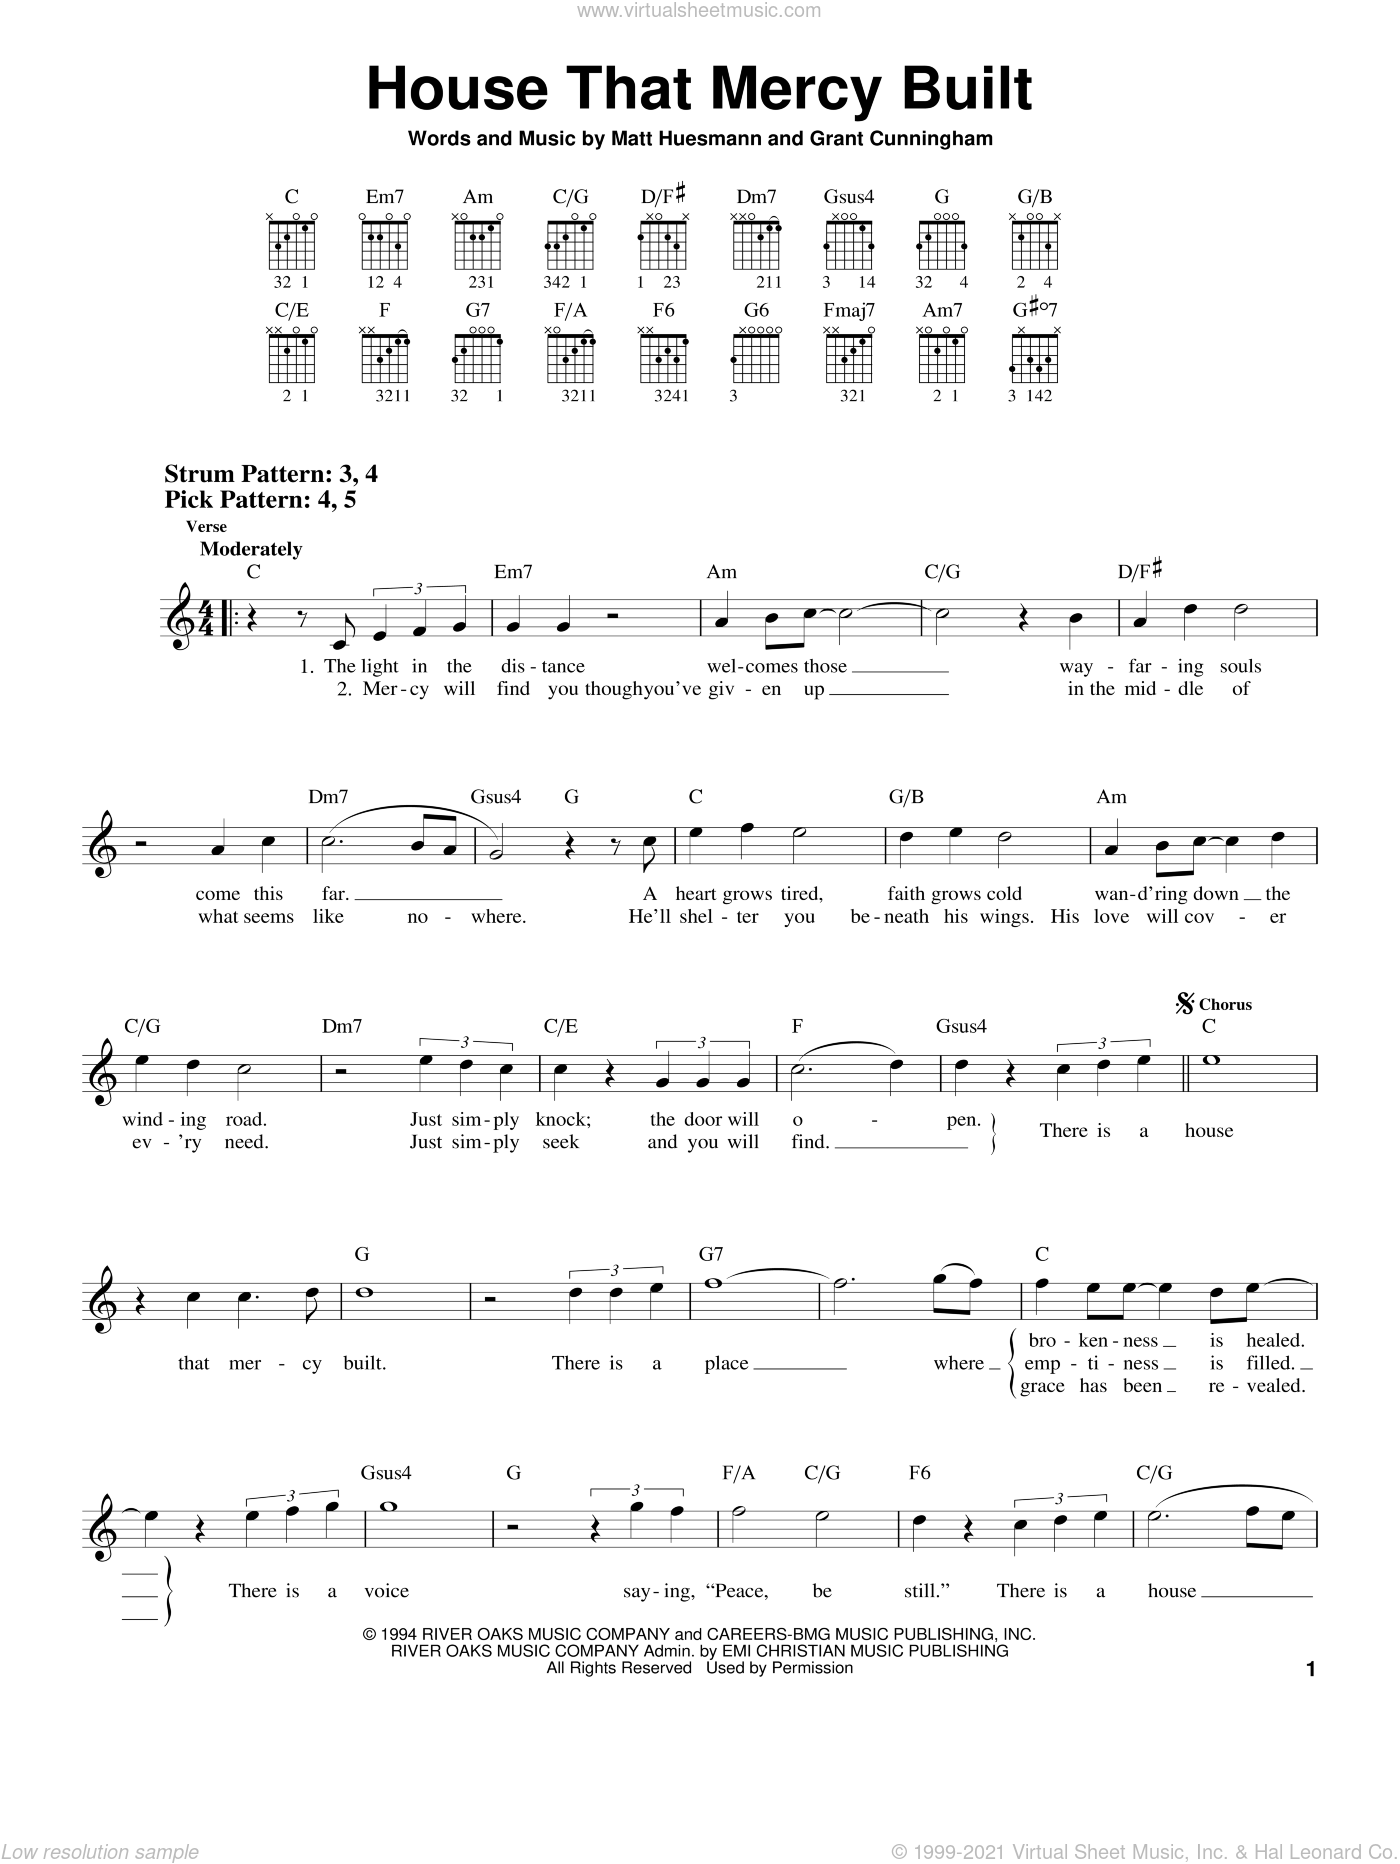 House That Mercy Built sheet music for guitar solo (chords) by Matt Huesmann